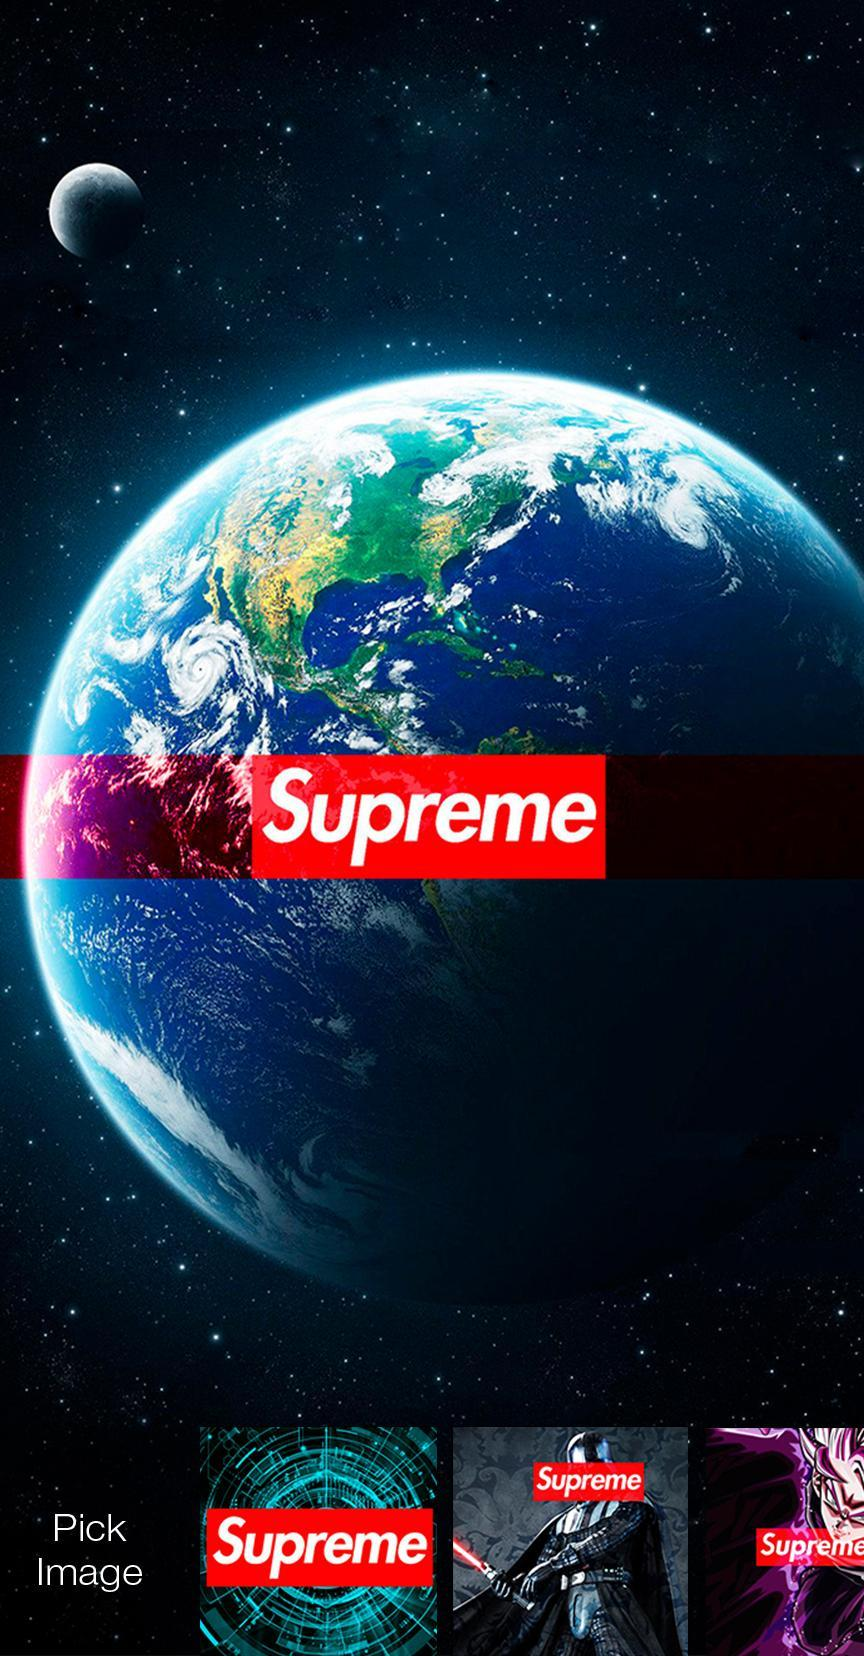 Supreme Aesthetic Wallpapers - Wallpaper Cave